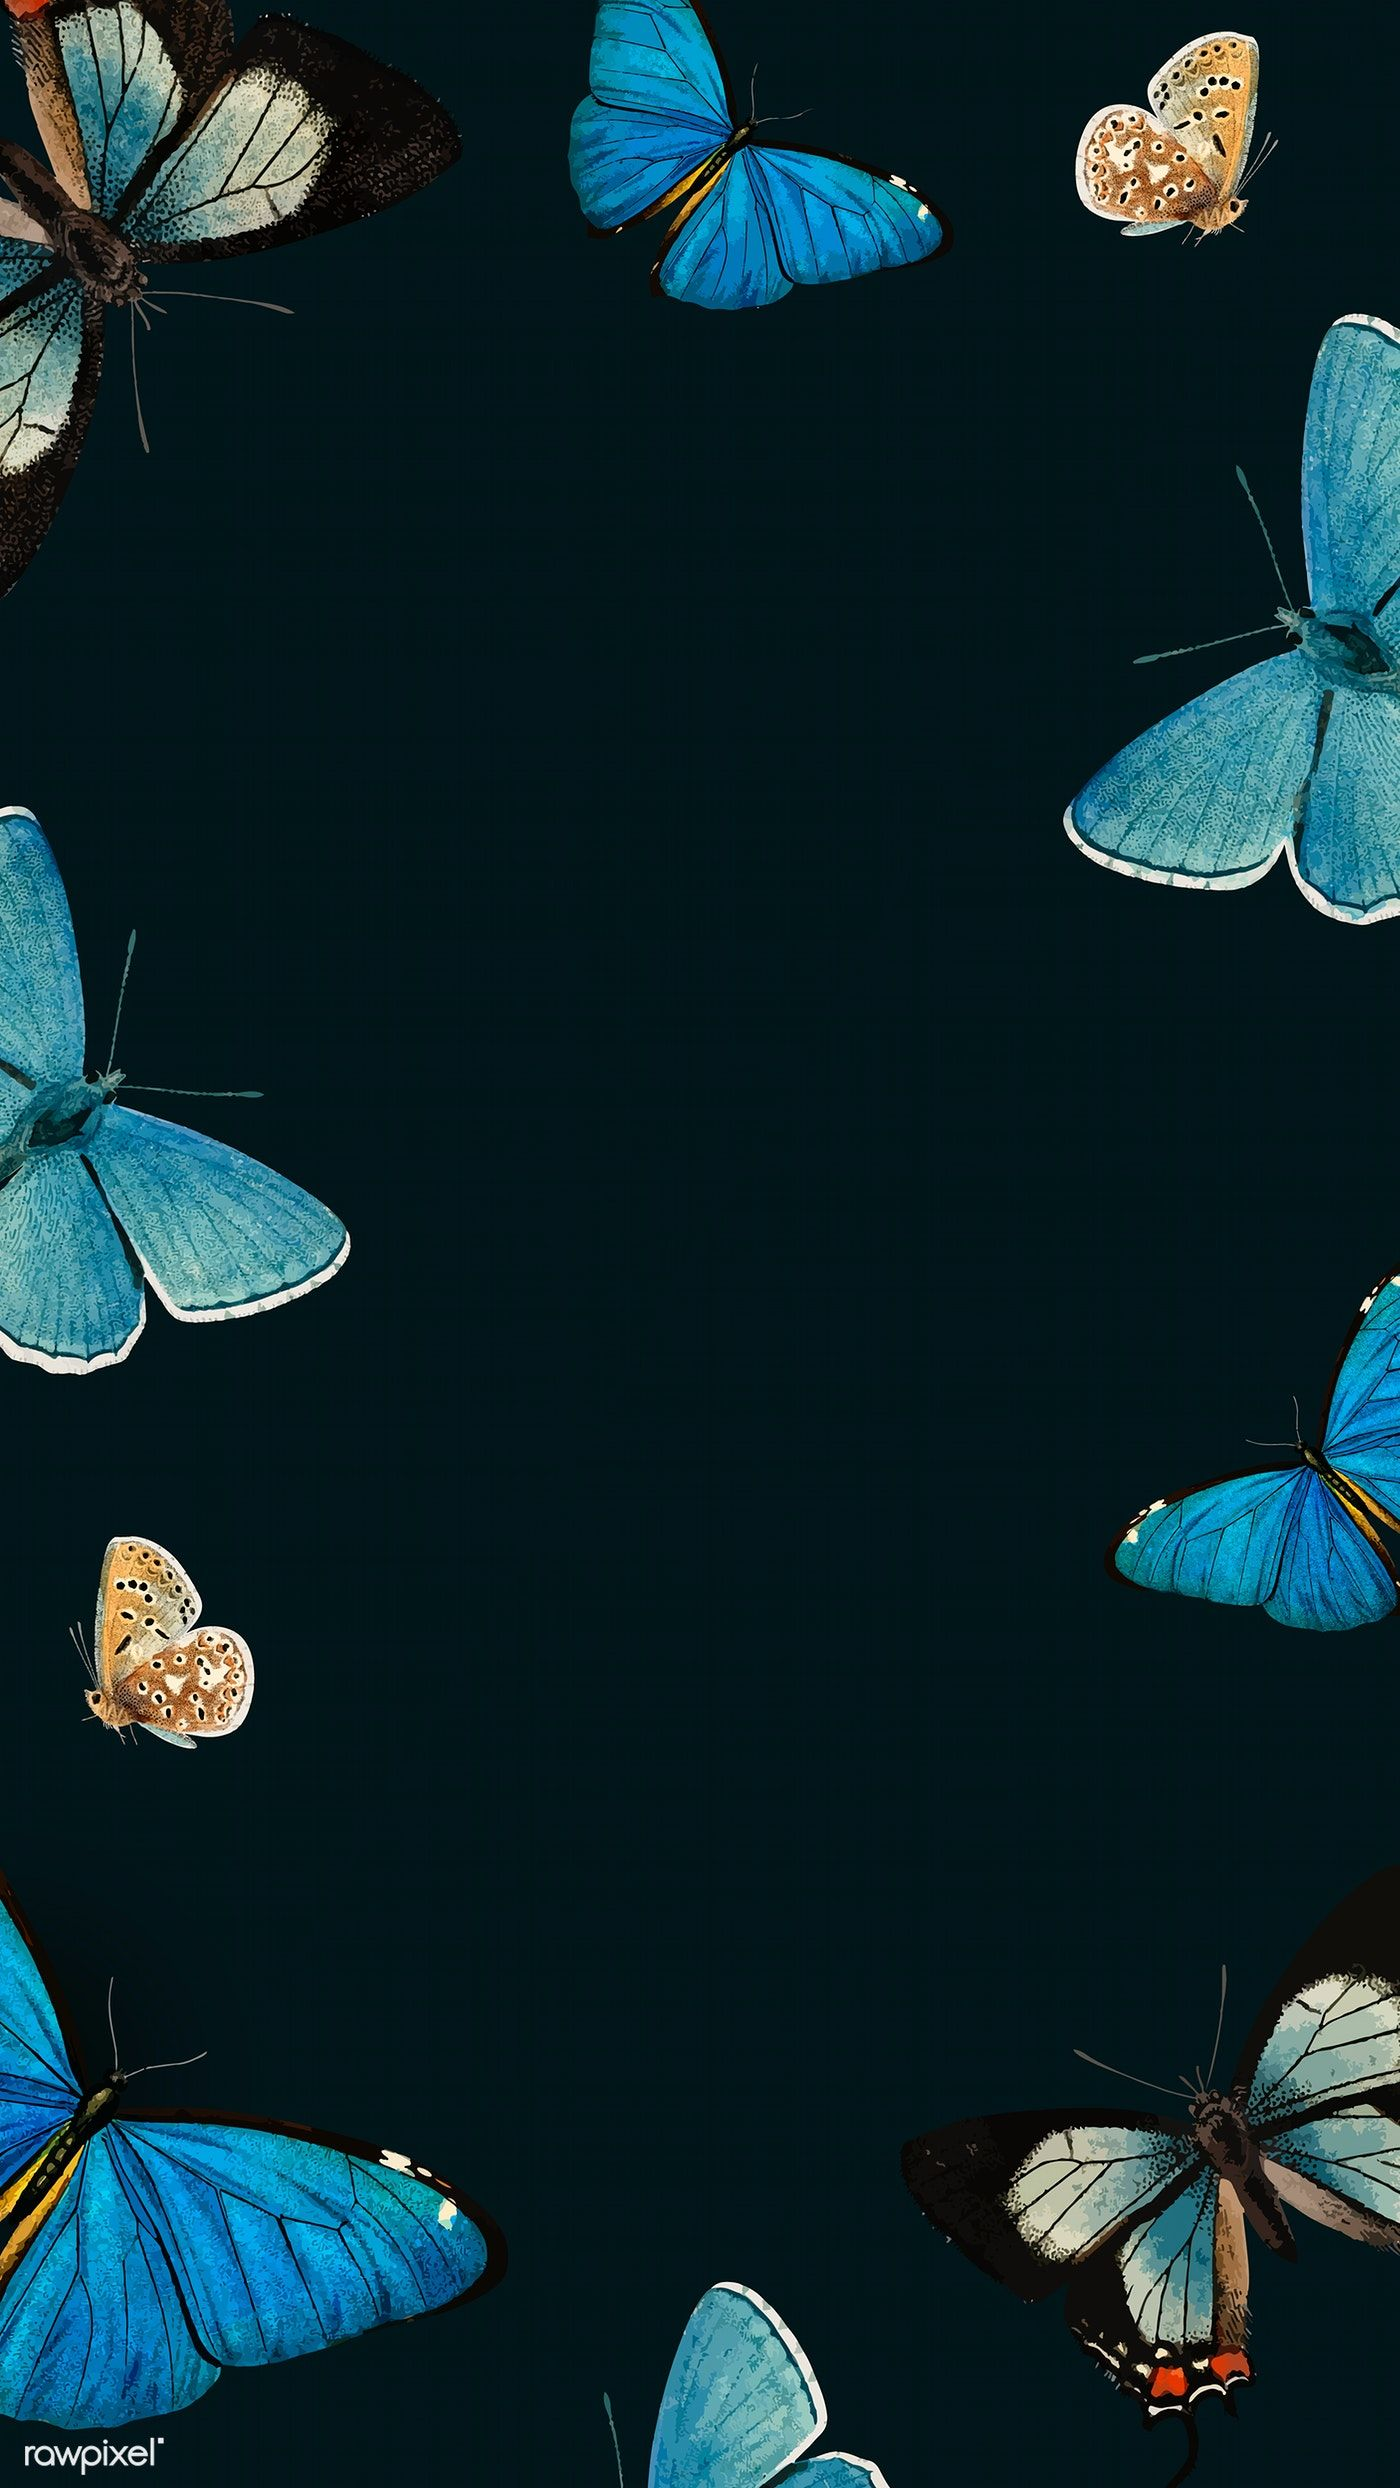 Aesthetic Tumblr Blue Butterfly Wallpaper Iphone